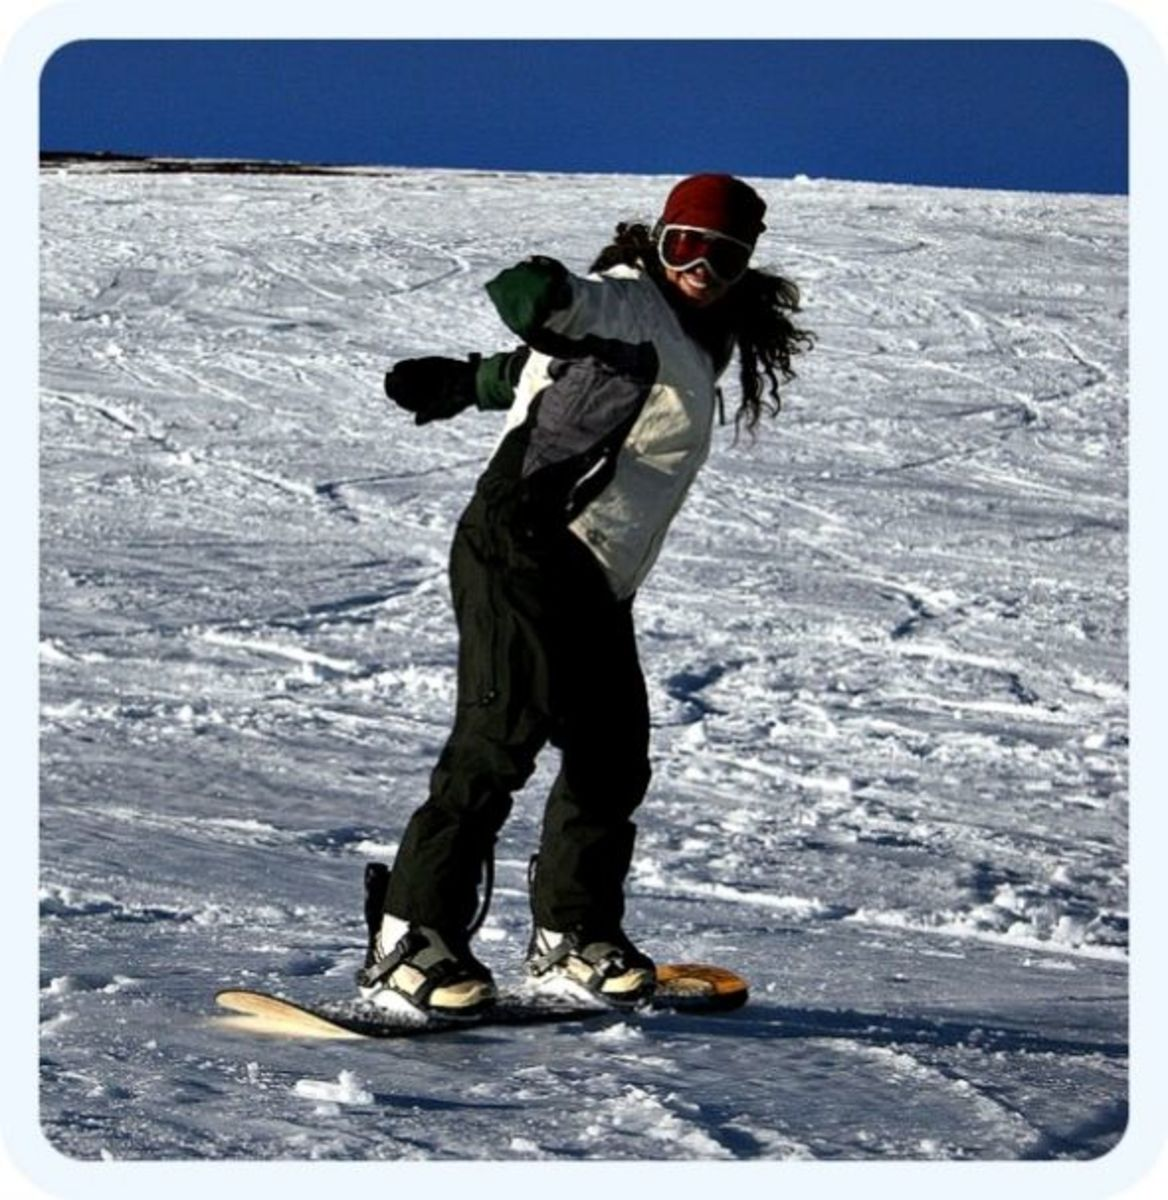 Snowboarder Nyree Sails Past Me with a Smile. Mauna Kea - Big Island of Hawaii